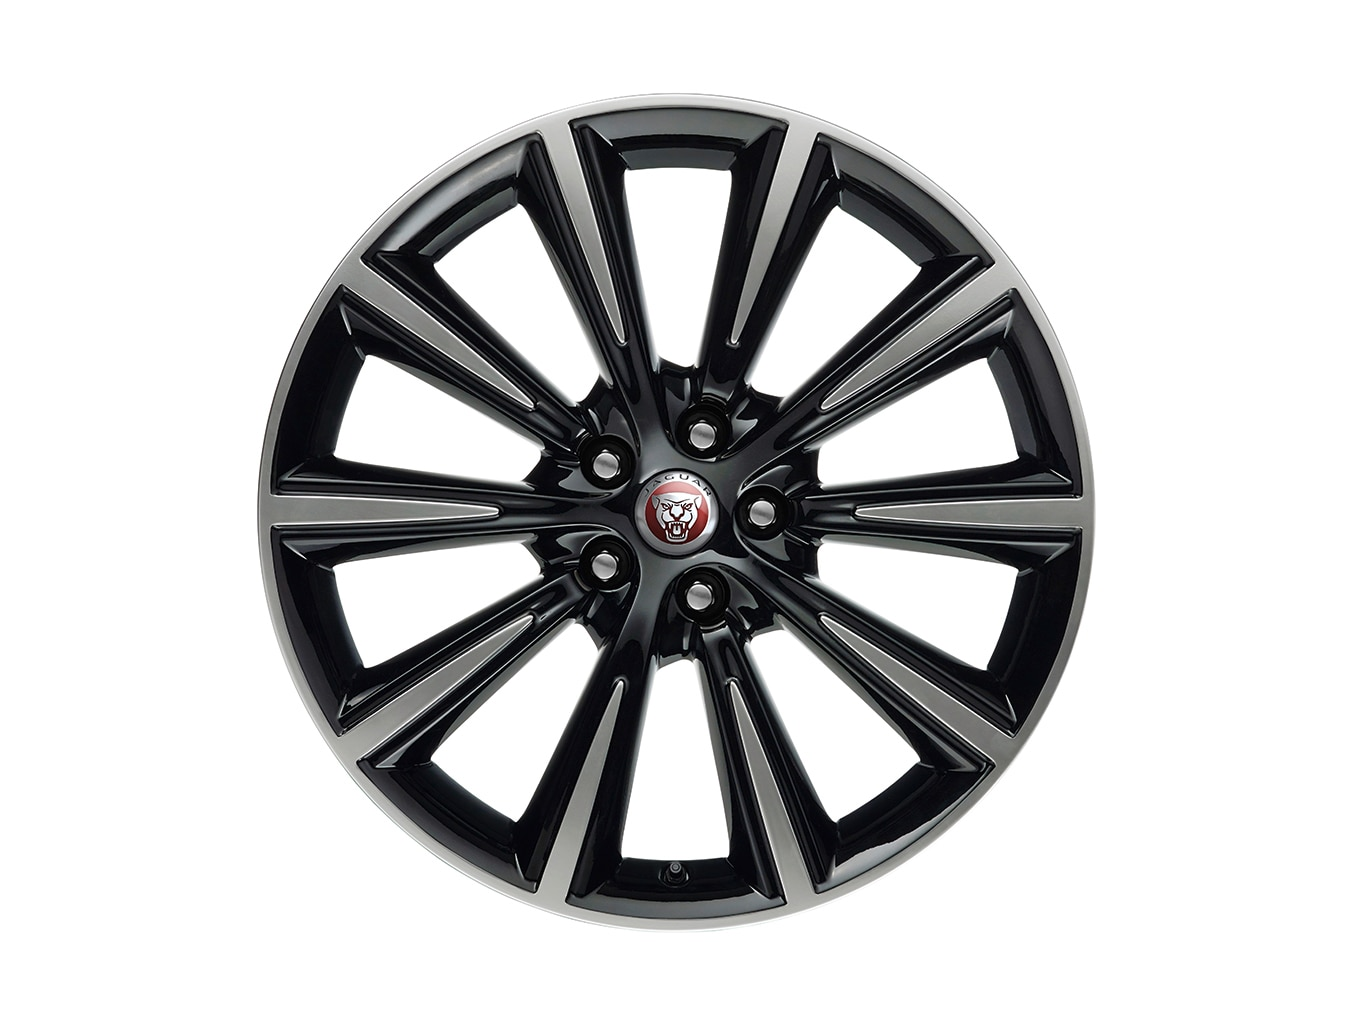 "Alloy Wheel - 19"" Style 1026, 10 spoke, Gloss Black Diamond Turned finish, Rear"